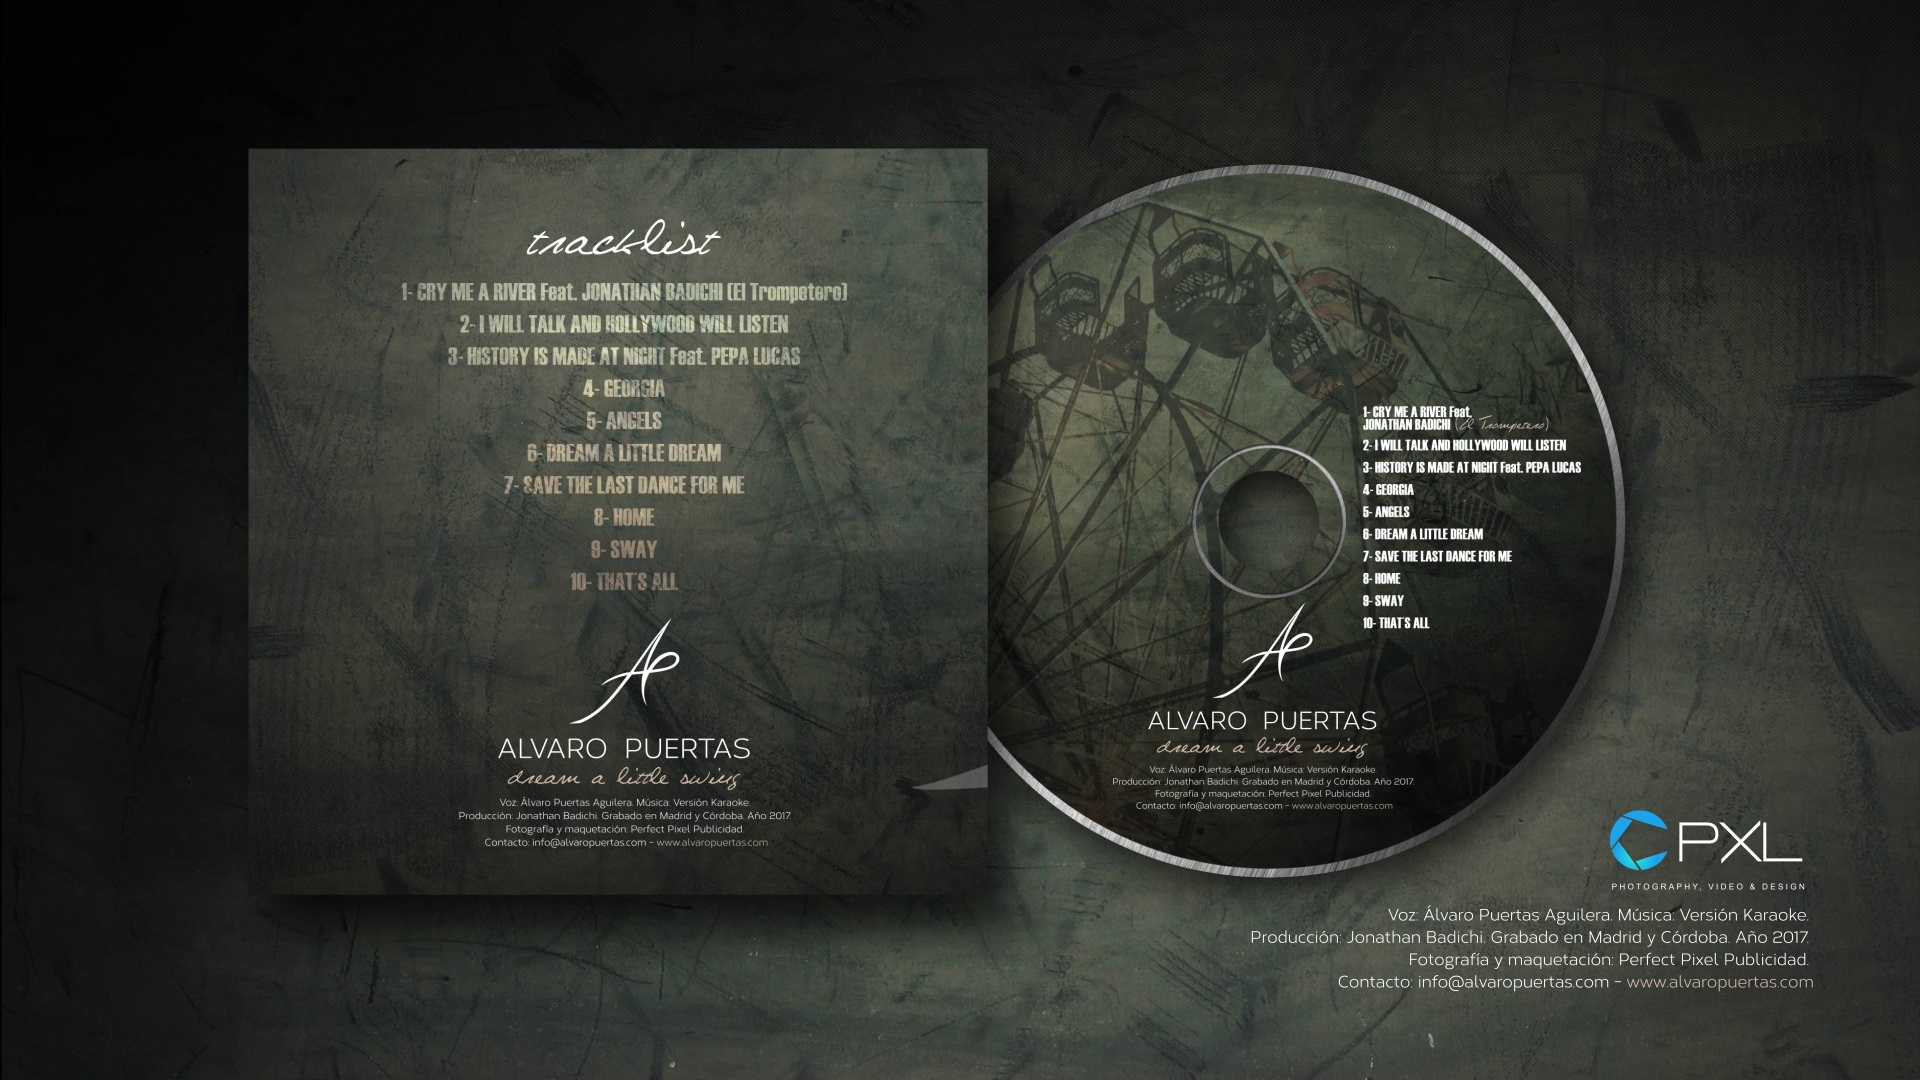 Álvaro Puertas - dream a little swing album CD design